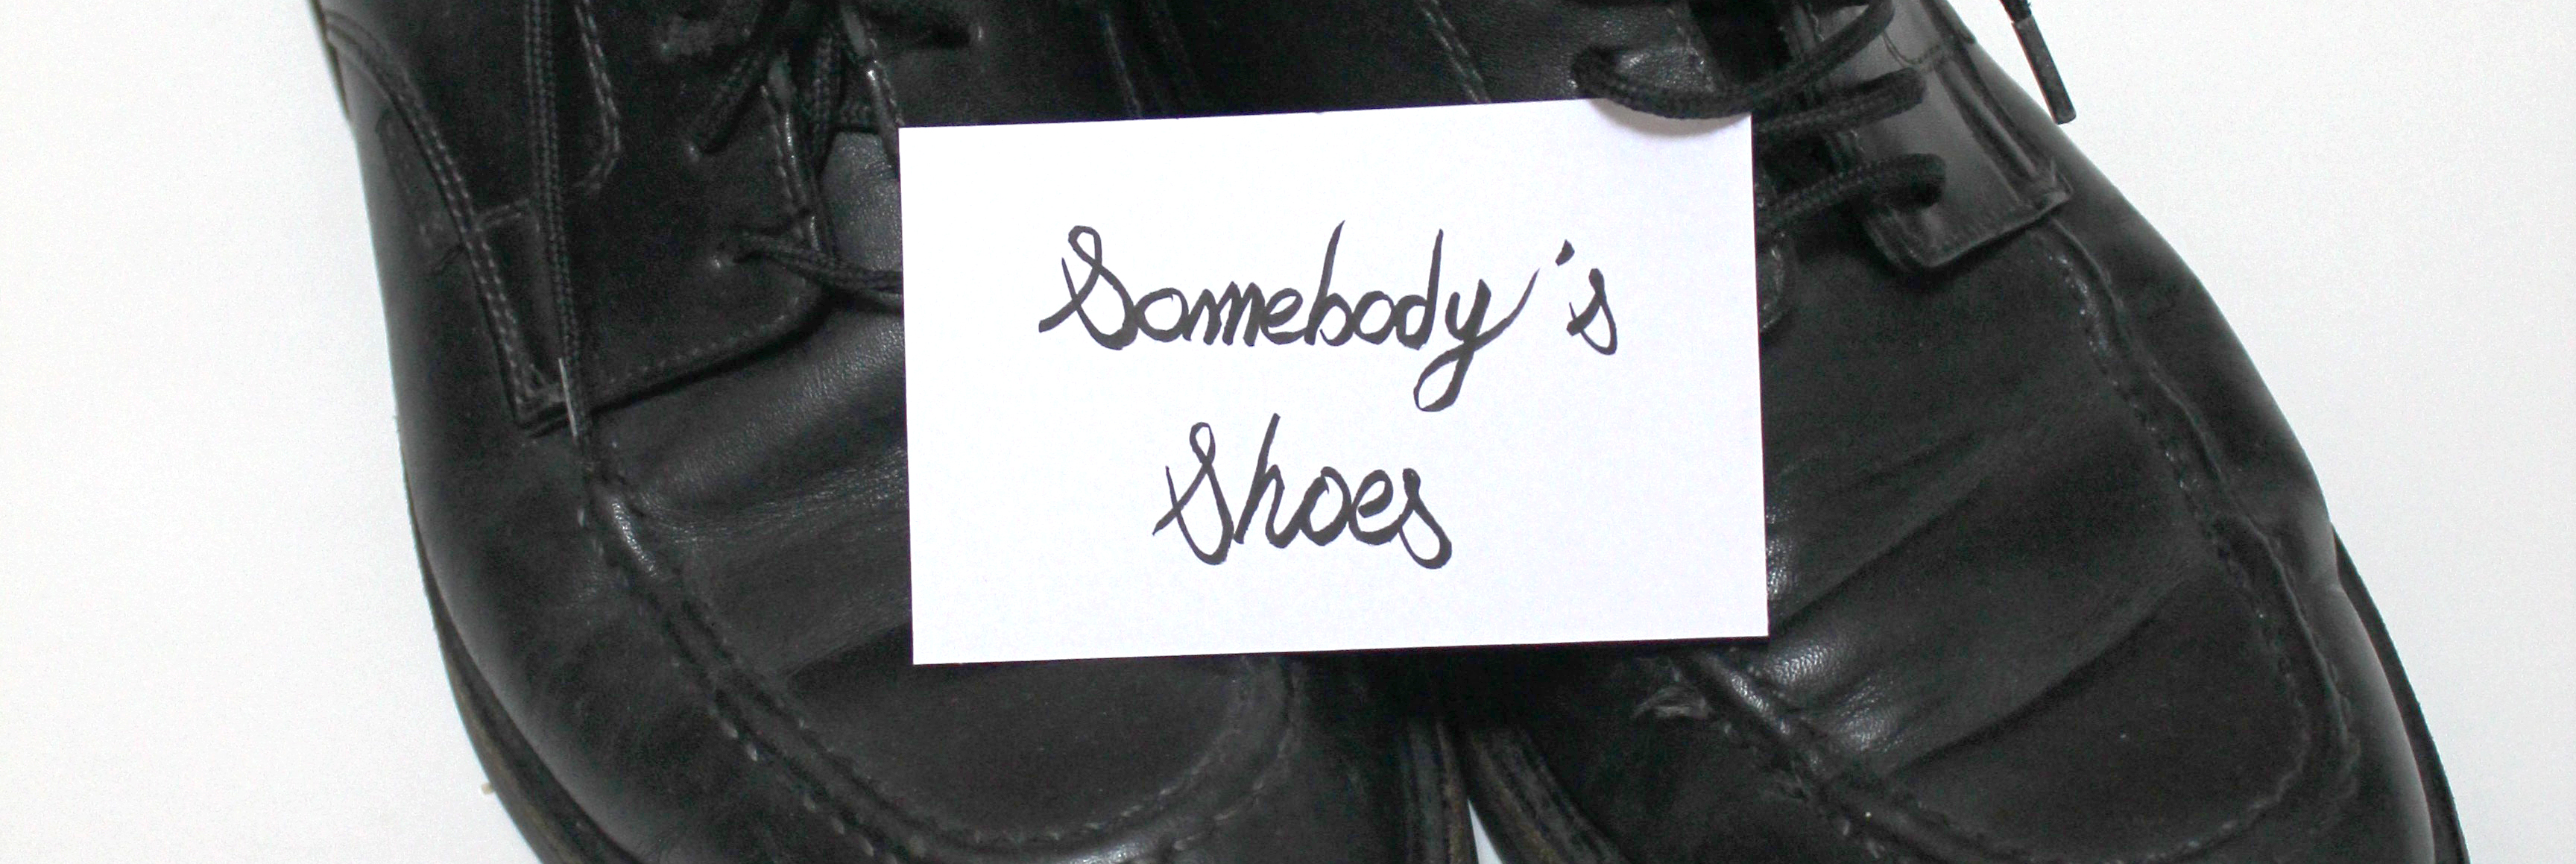 Somebody's Shoes